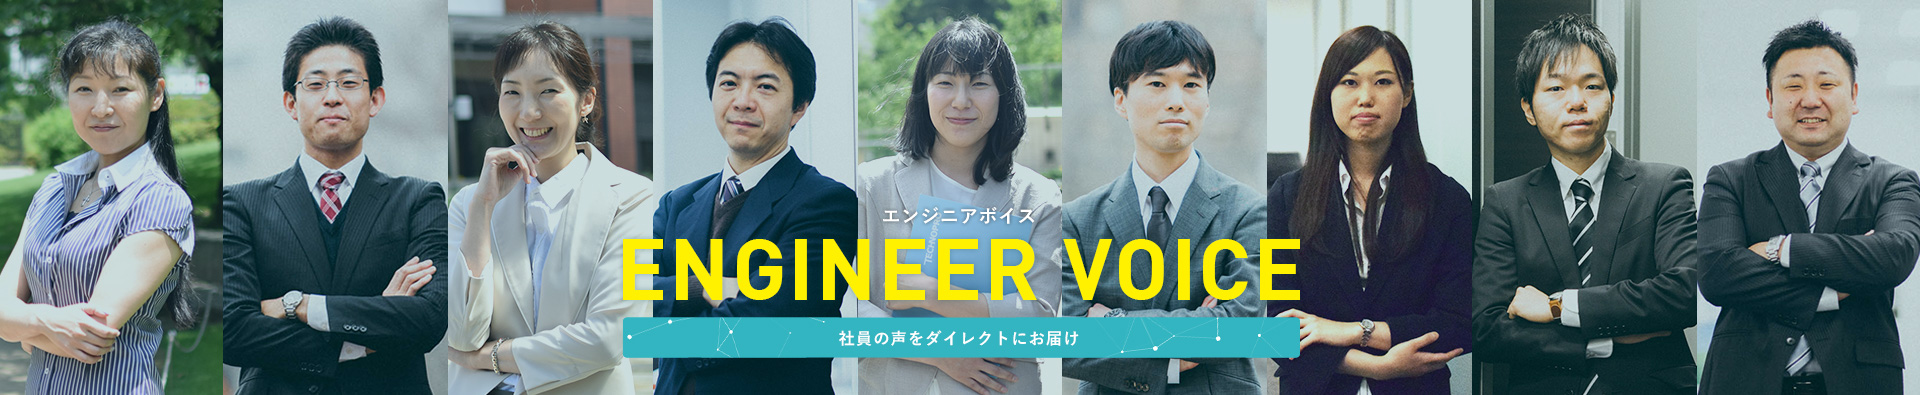 ENGINEER VOICE